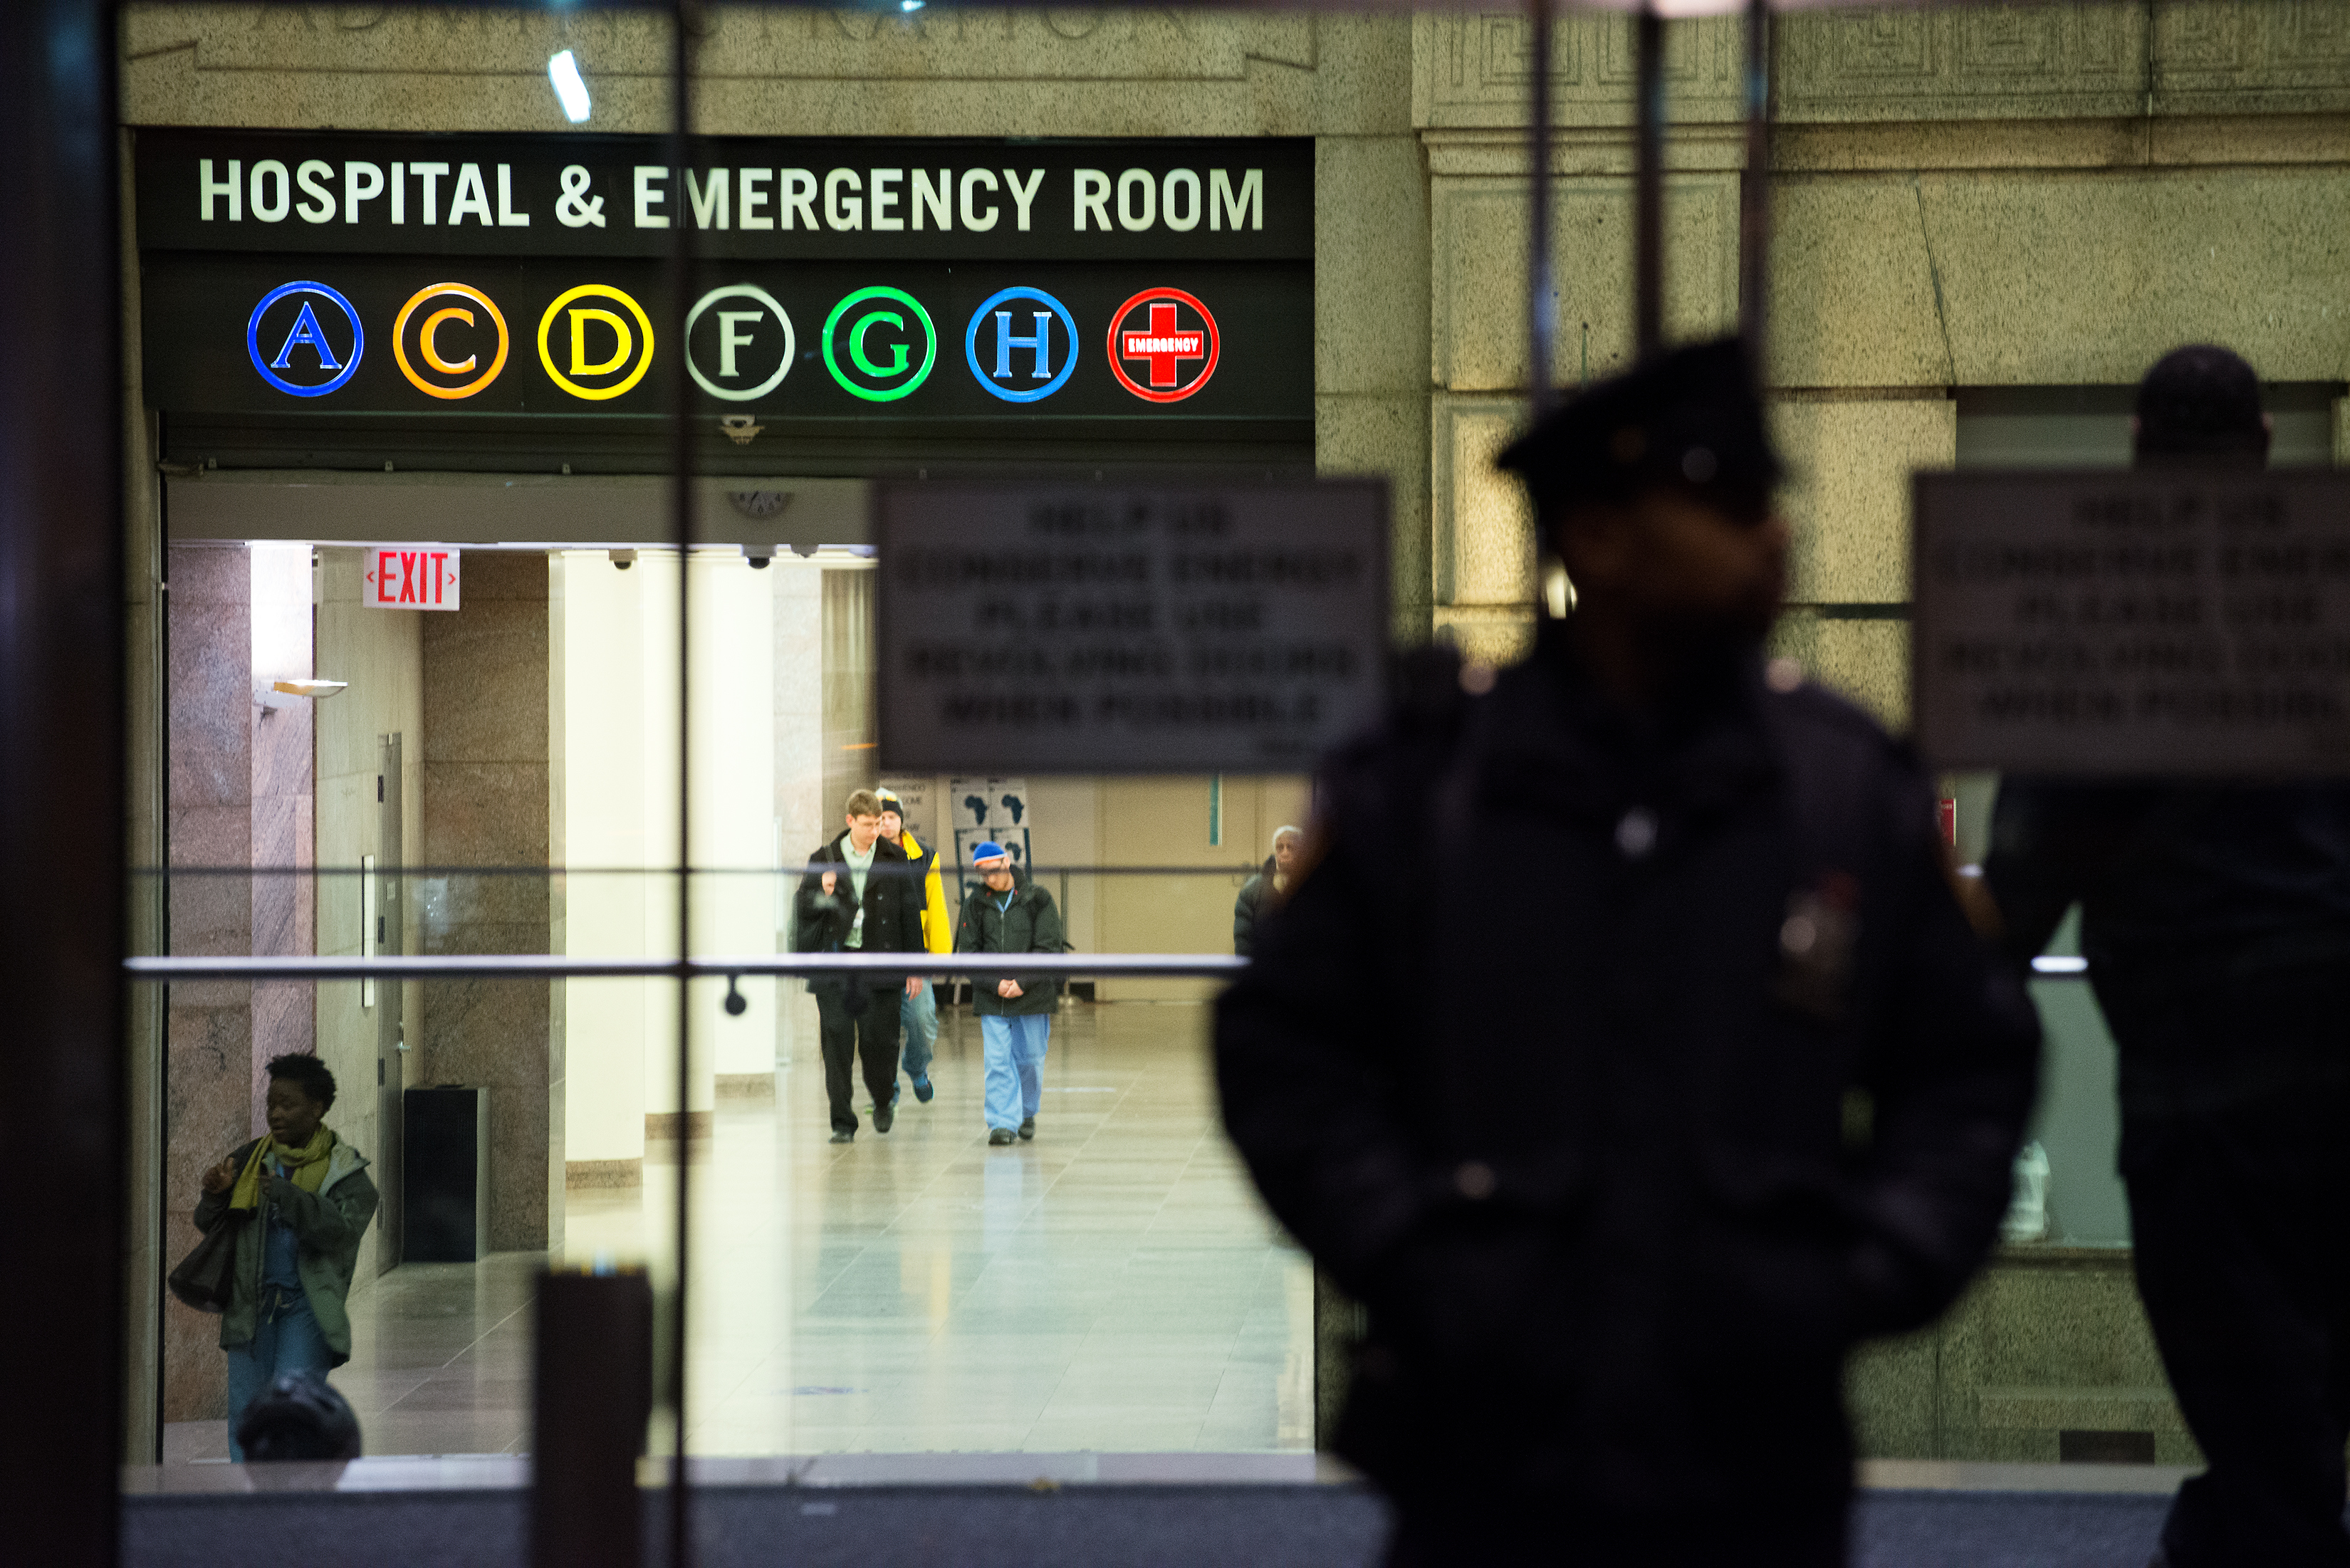 A New York City Police officer stands at the entrance to Bellevue Hospital October 23, 2014 in New York City.